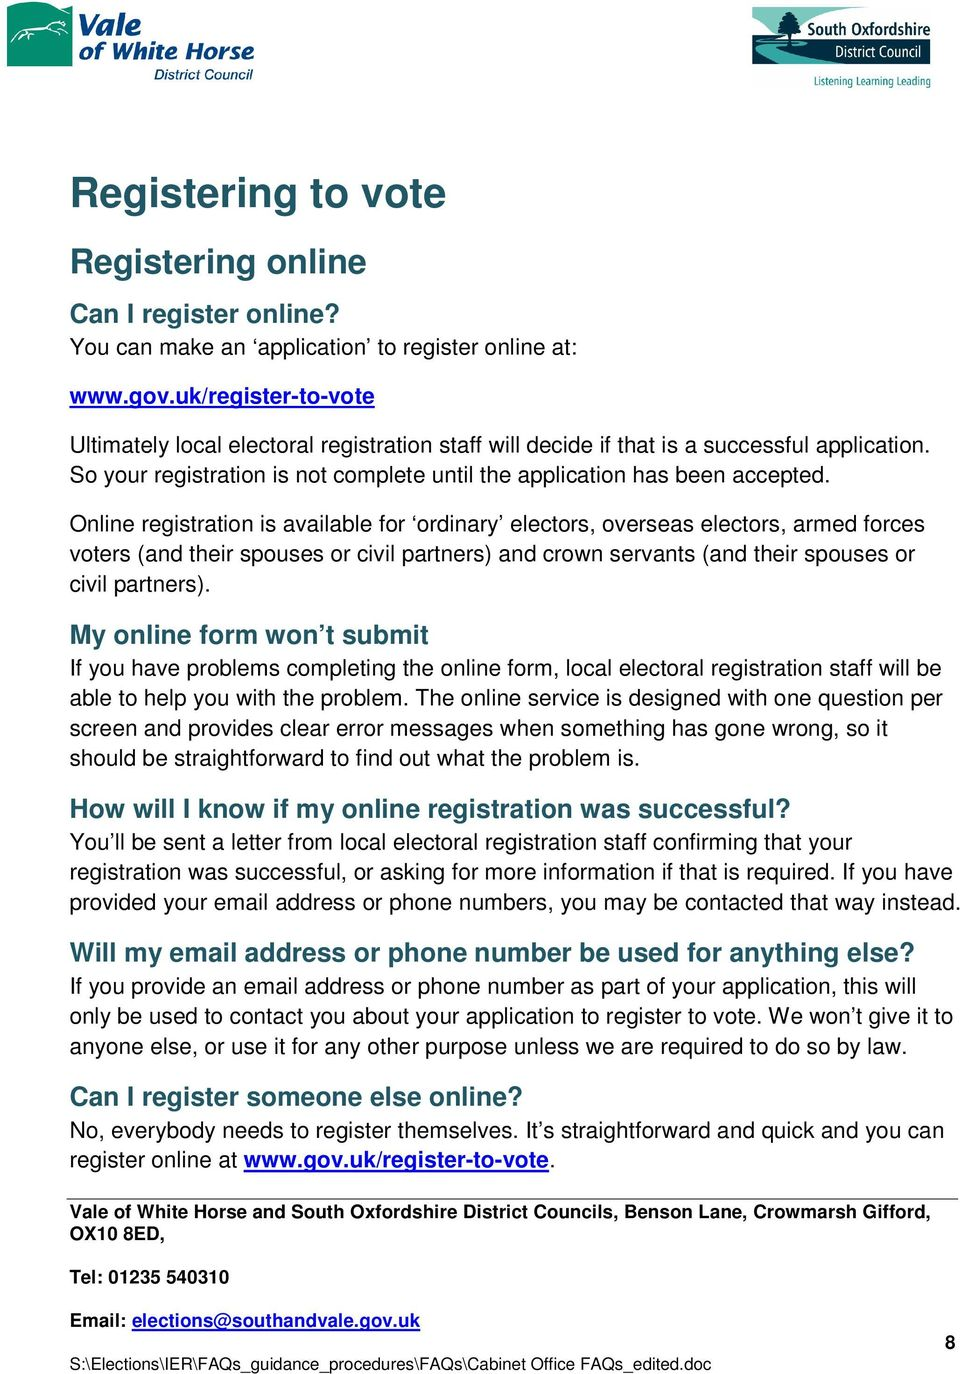 Online registration is available for ordinary electors, overseas electors, armed forces voters (and their spouses or civil partners) and crown servants (and their spouses or civil partners).